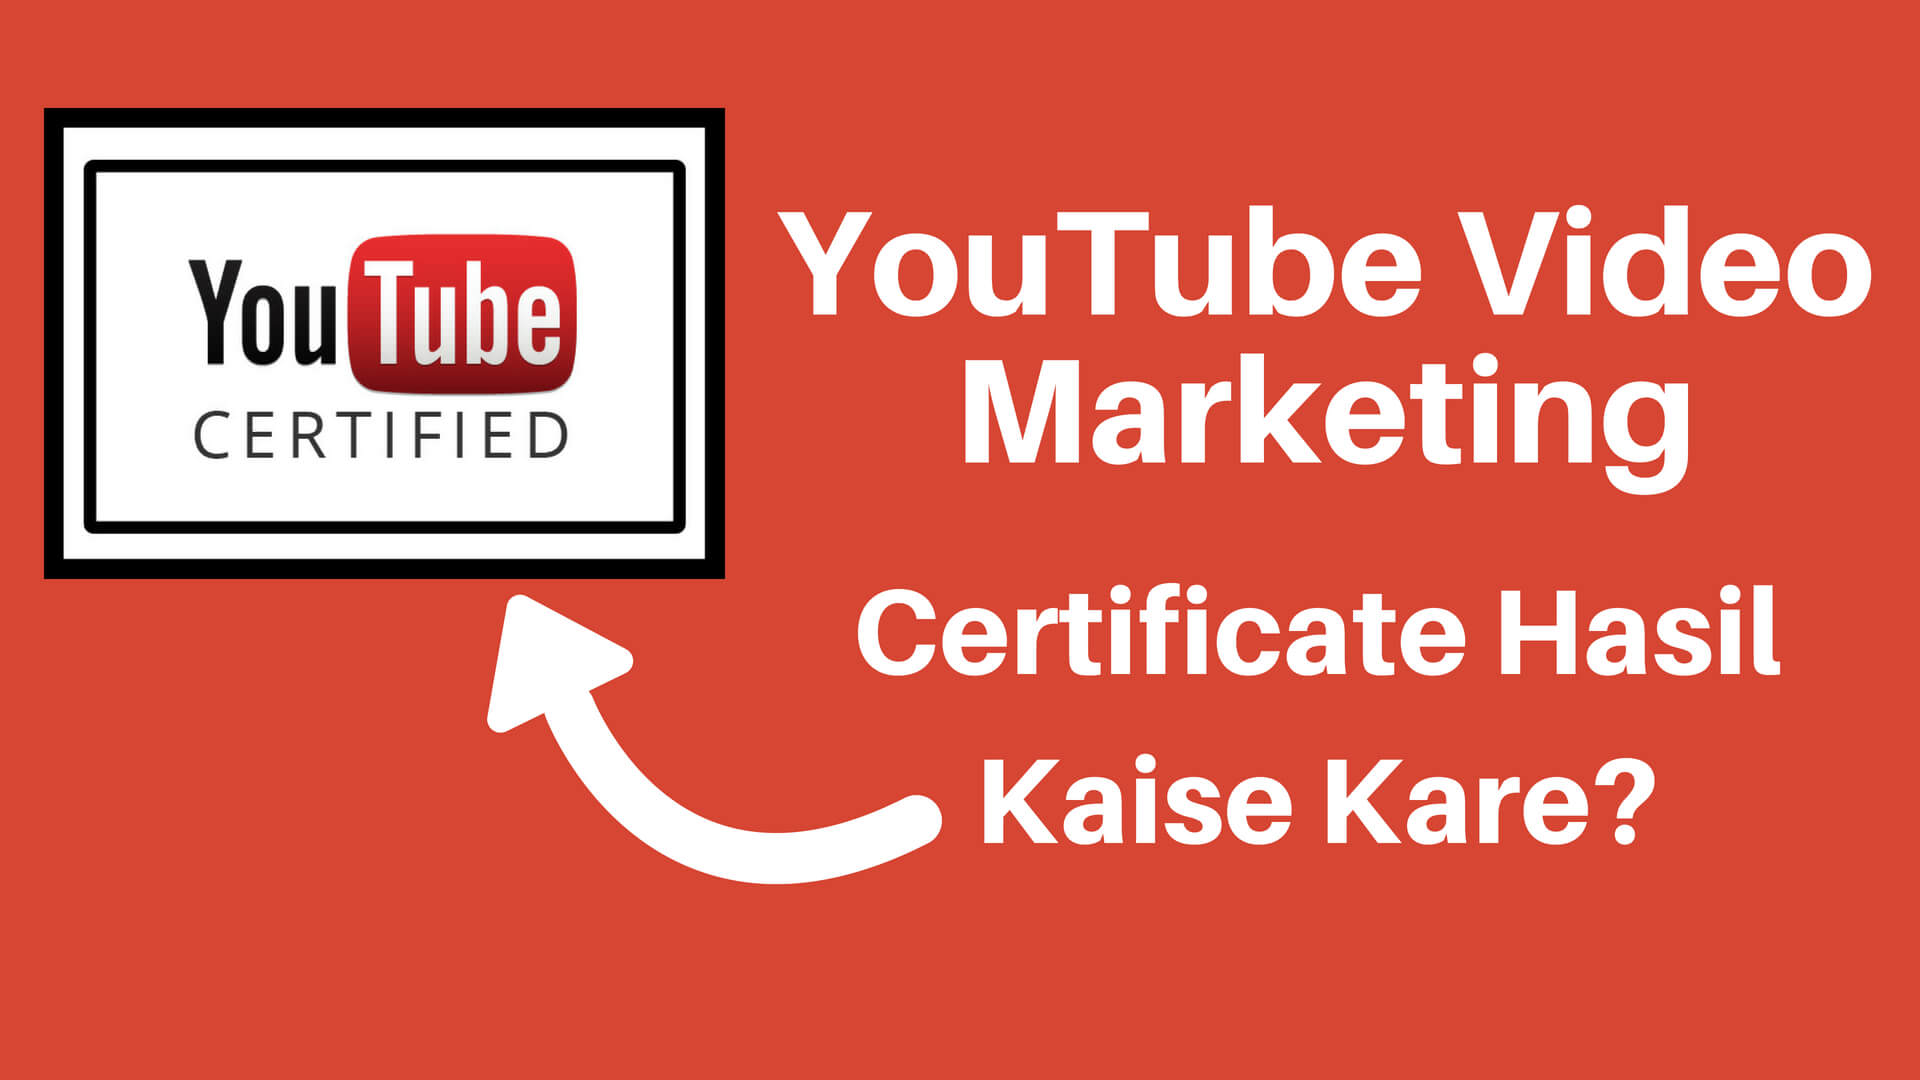 YouTube Video Marketing Certificate